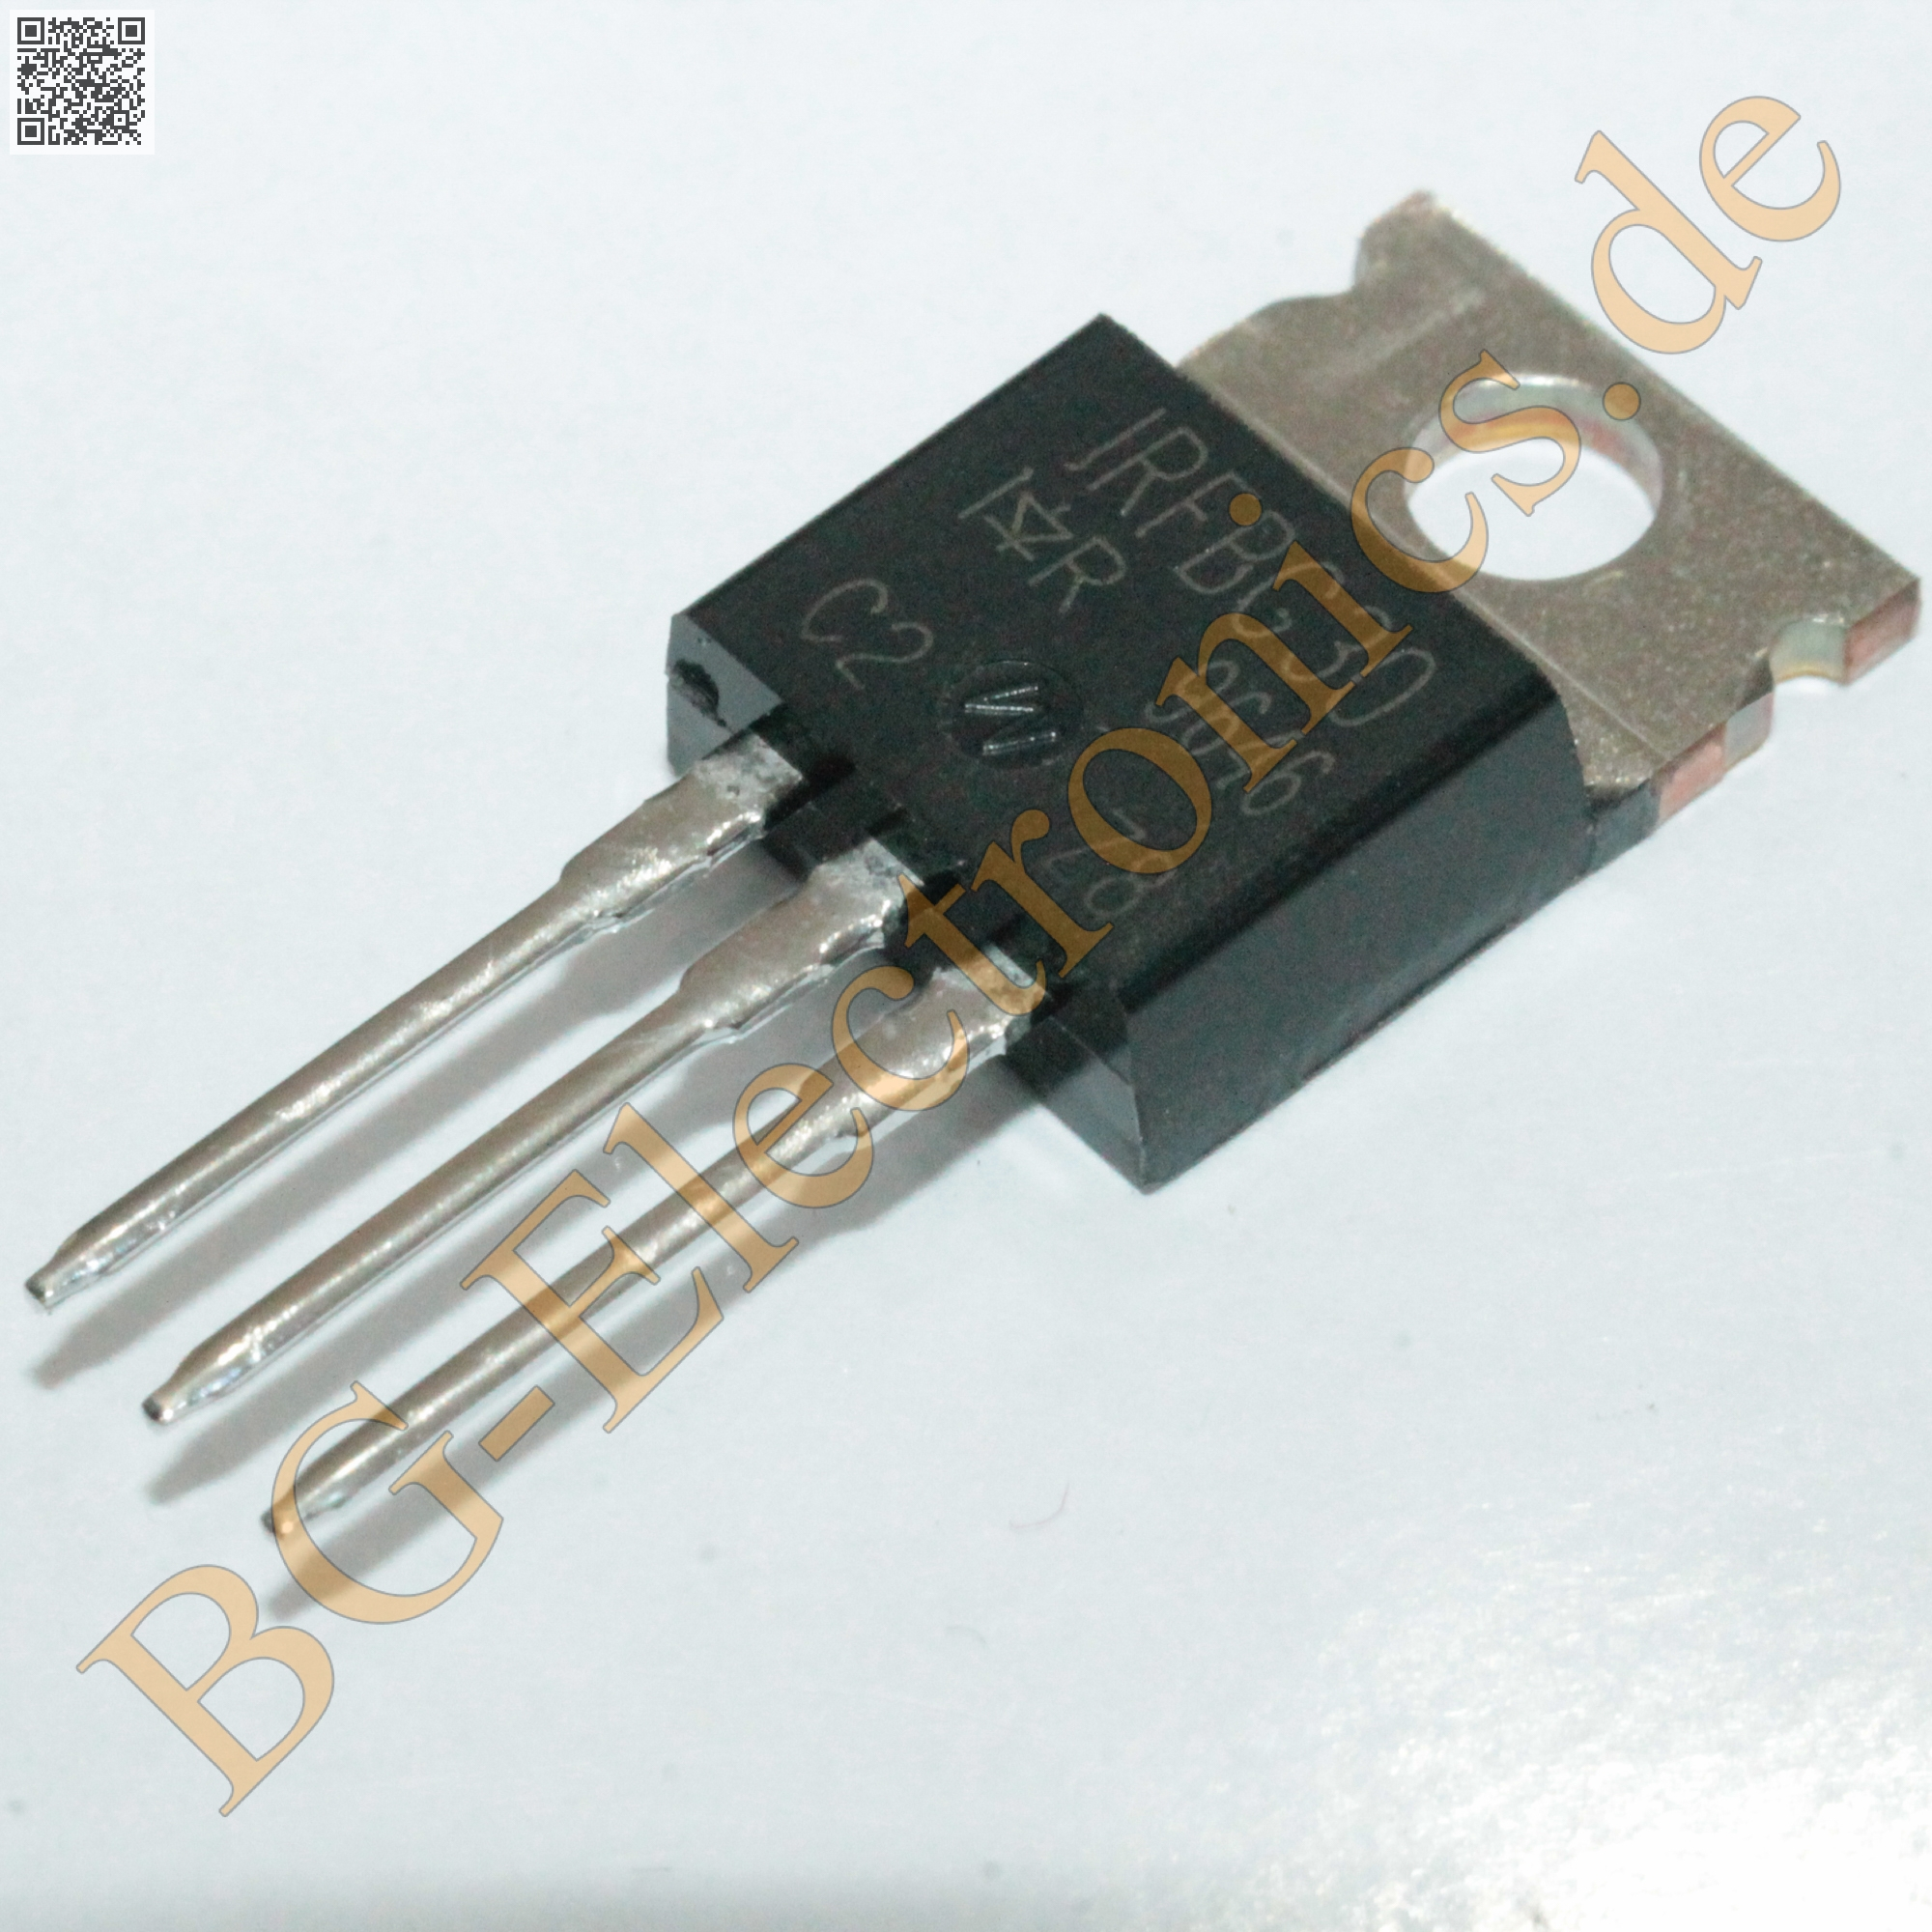 5 x IRF1010E Power MOSFET 12 mΩ 60V  Internati TO-220 5pcs